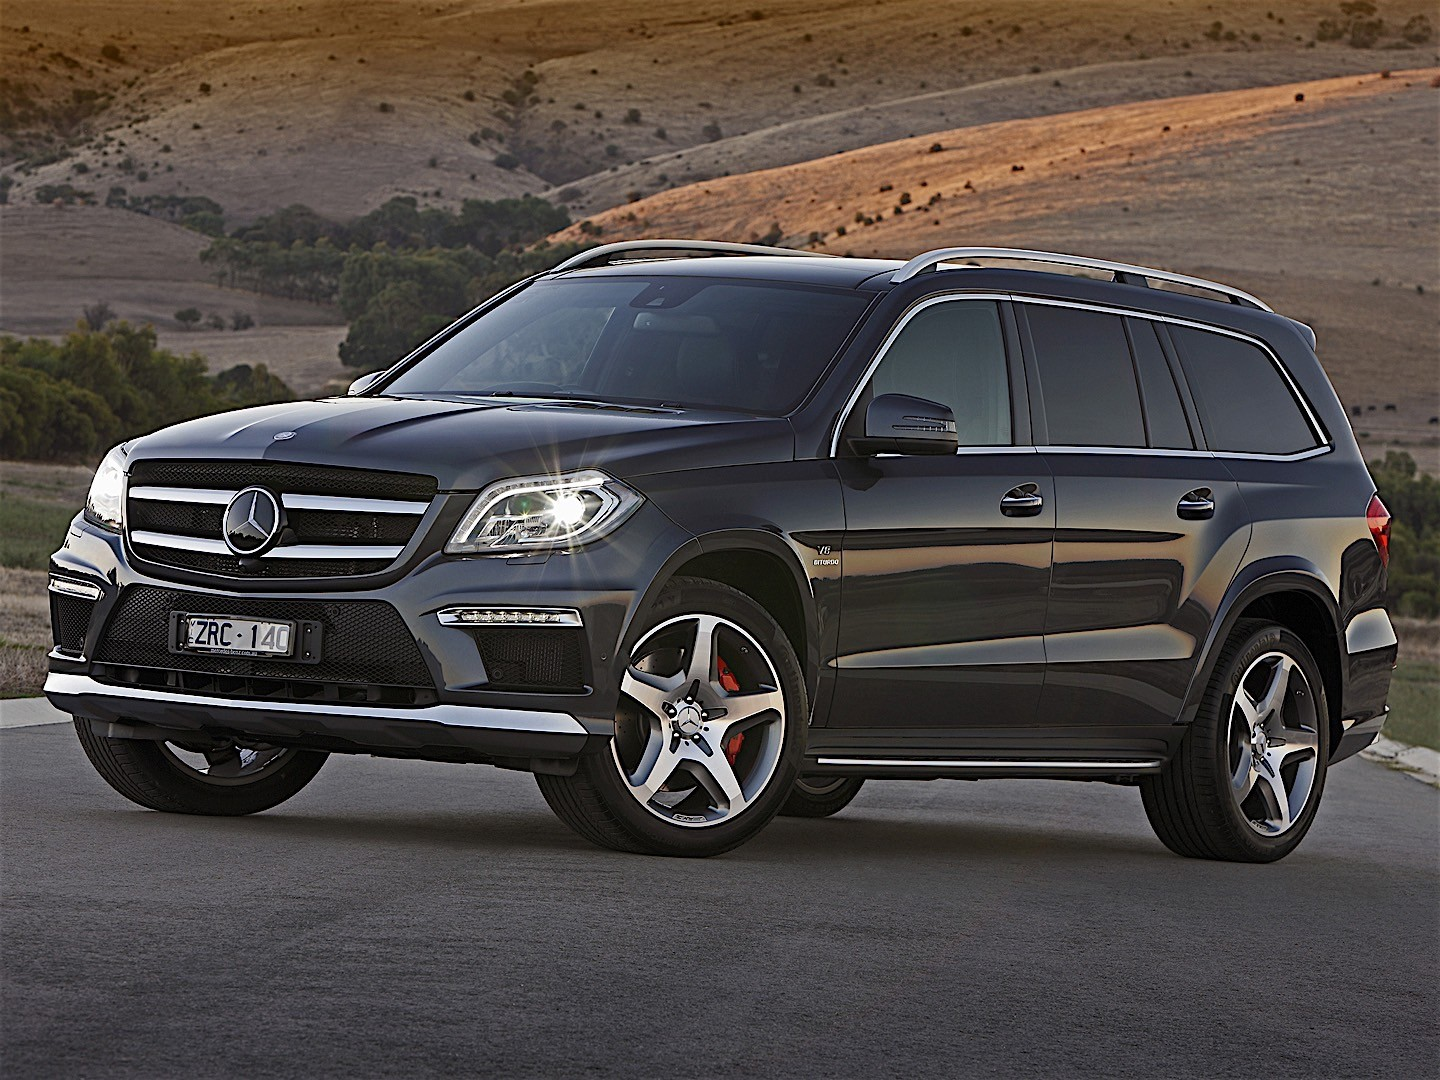 Mercedes benz gl 63 amg x166 2012 2013 2014 2015 for Gl mercedes benz